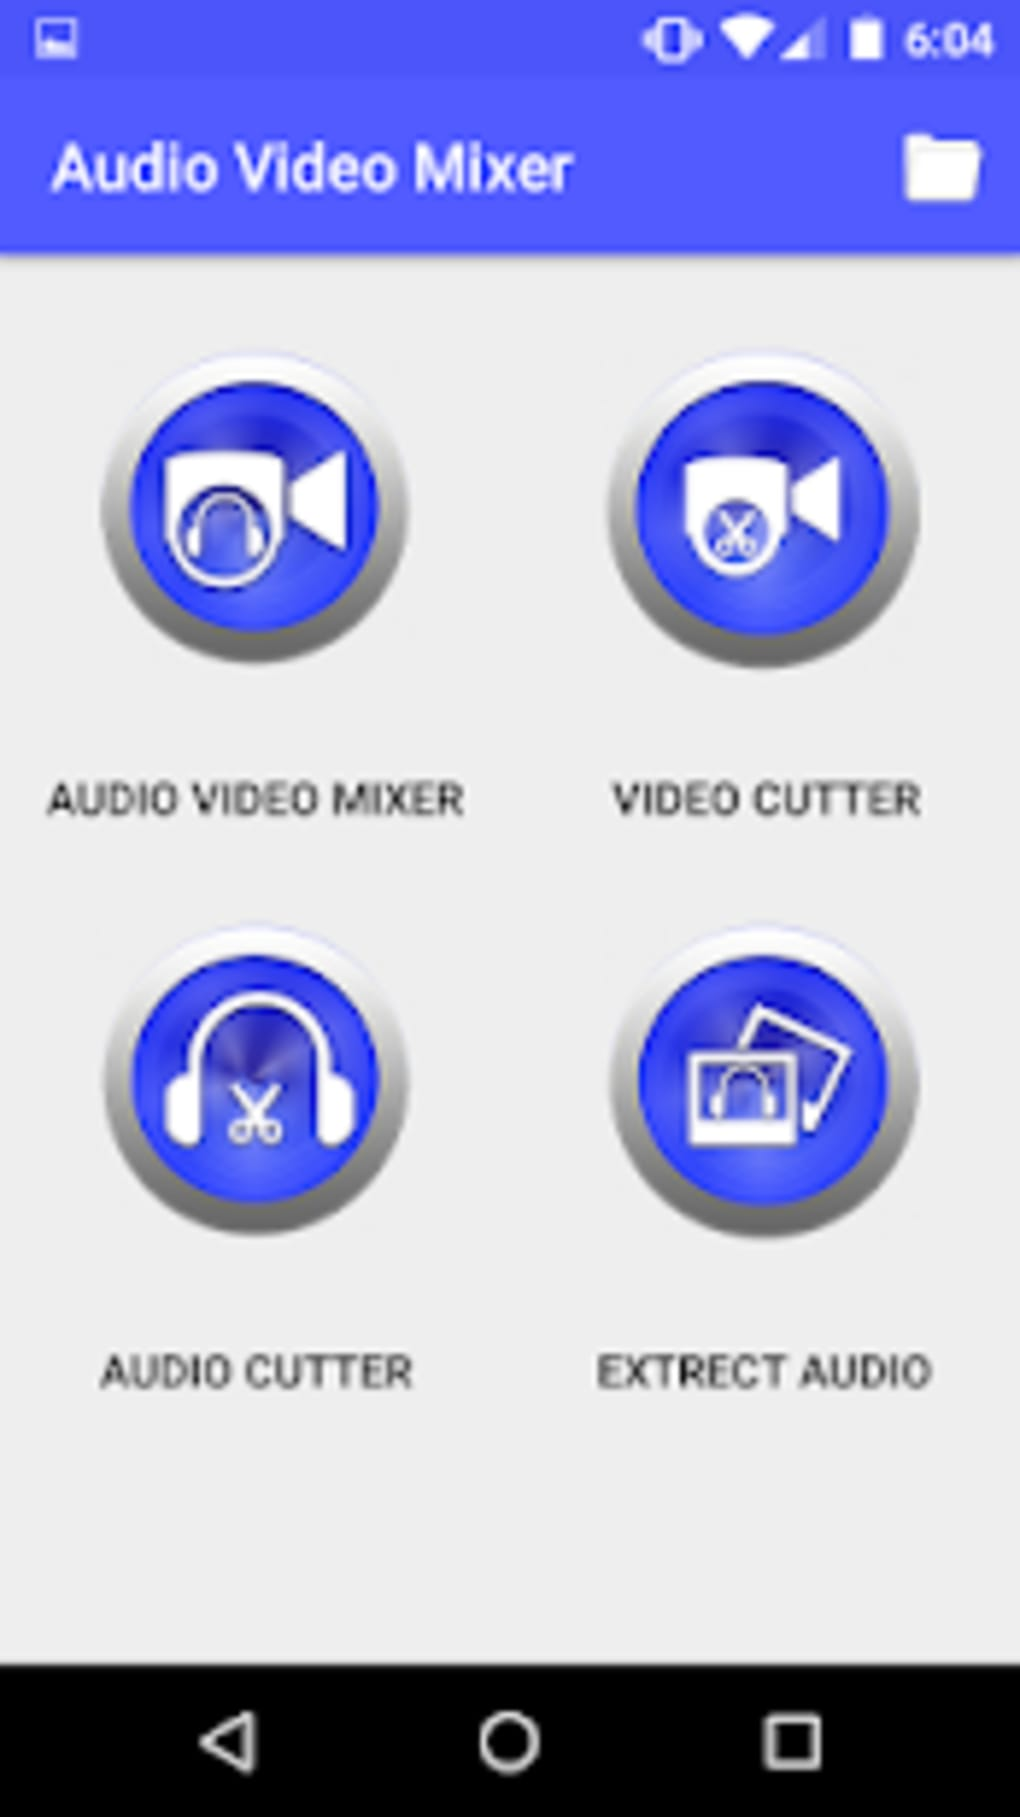 Audio Video Mixer Video Cutter video to mp3 app for Android - Download